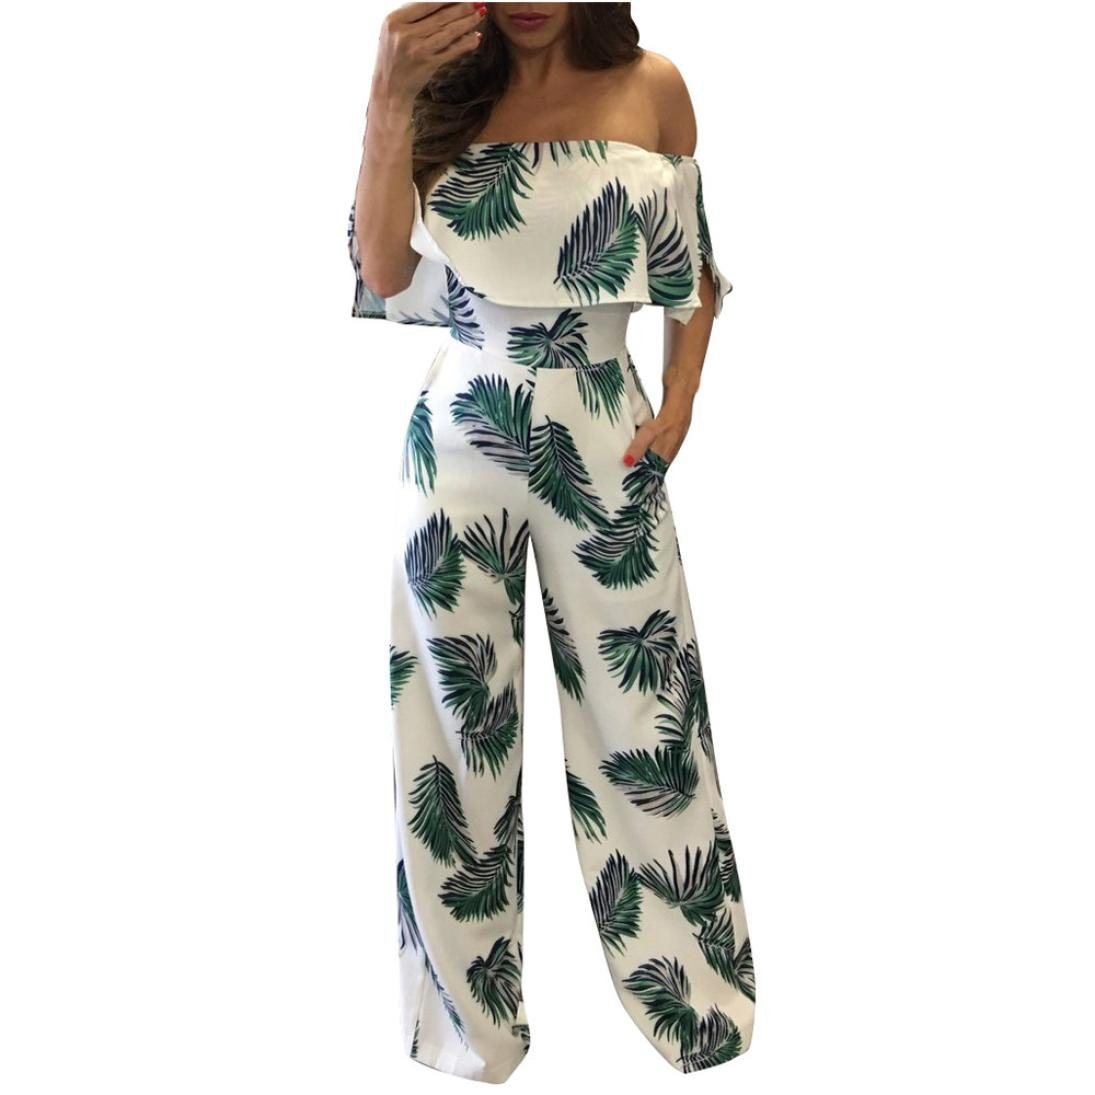 7c7cd8ee7fd Amazon.com  Women Jumpsuit Daoroka Sexy Off Shoulder Floral Print Ruffled  Casual Rompers Wide Long Pants Loose Beach Playsuit  Toys   Games